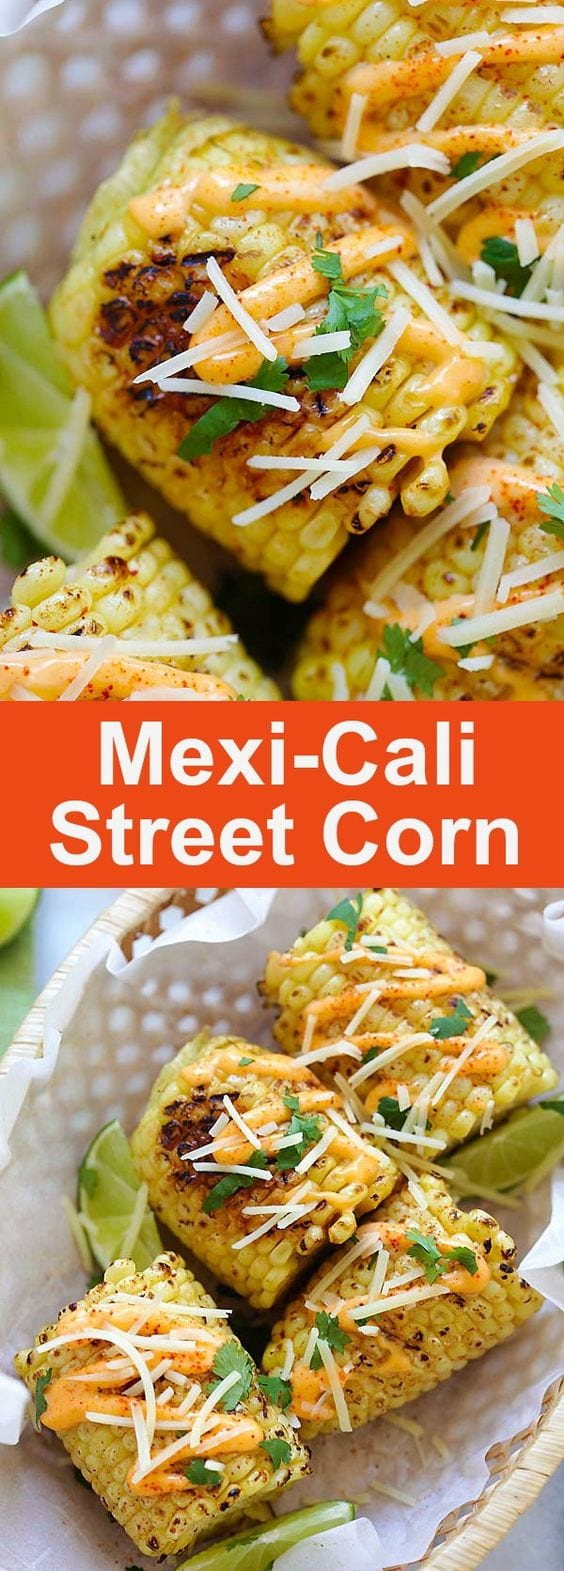 Mexi-Cali Street Corn – best Mexican street corn with Chipotle seasoning, spicy mayo, Parmesan cheese, lime and cilantro. So good | rasamalaysia.com